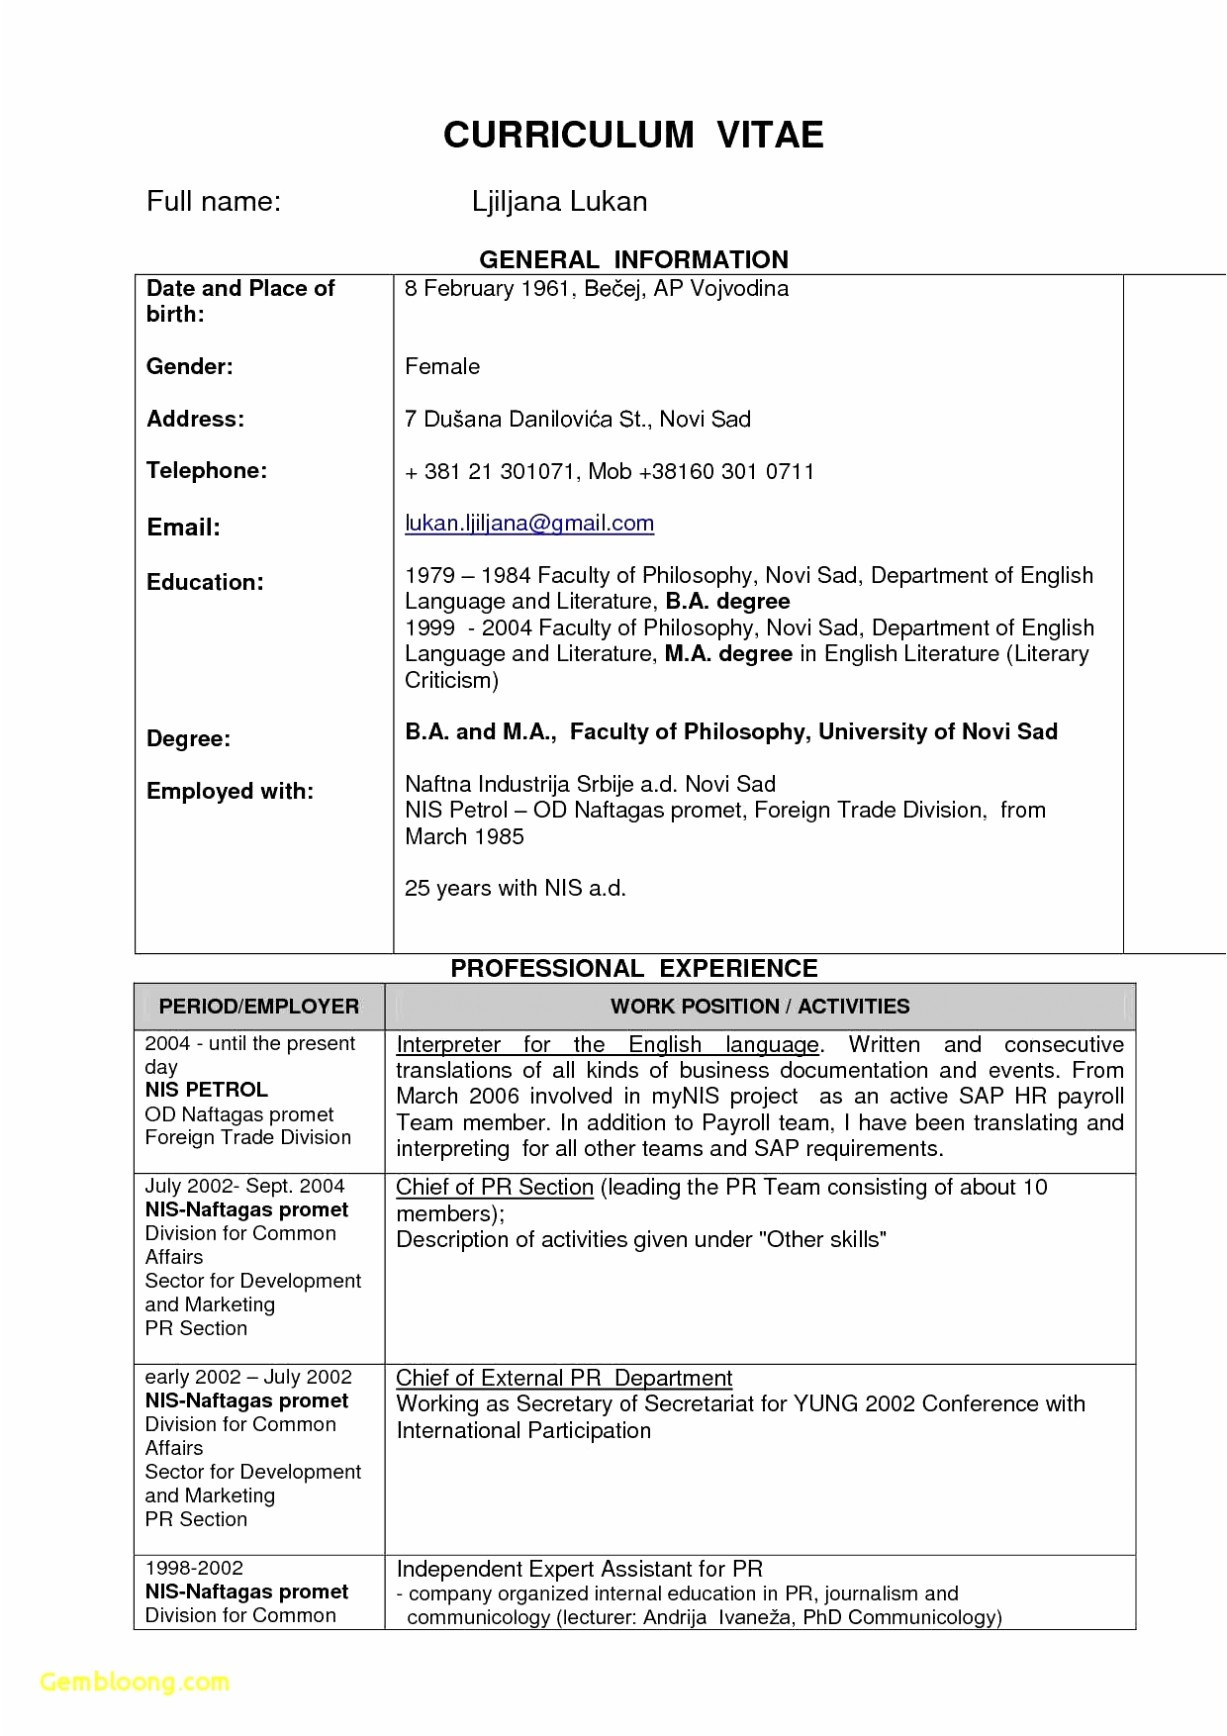 Resume Template for Secretary - Actor Resume Template Save Work Objective for Resume New Actor